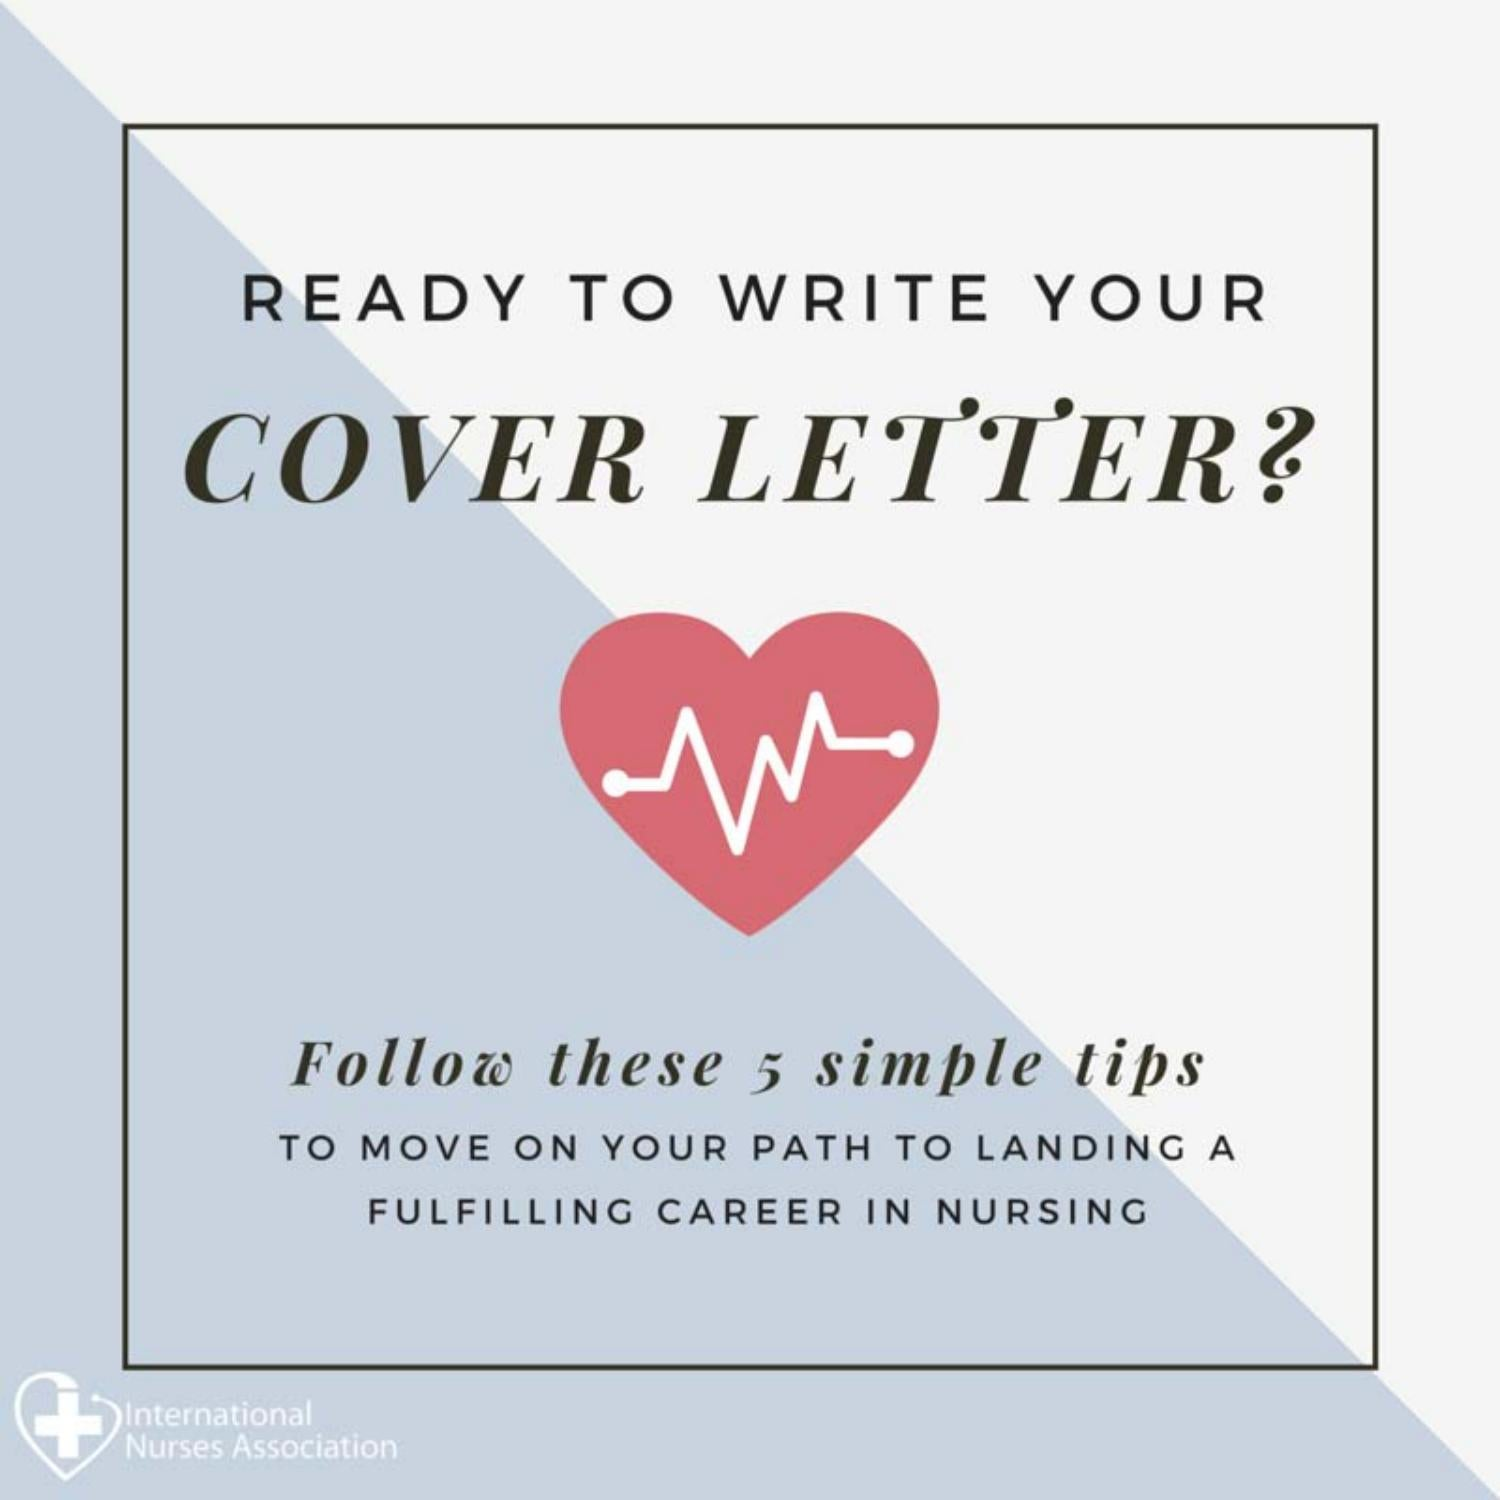 international nurses association cover letter tips by